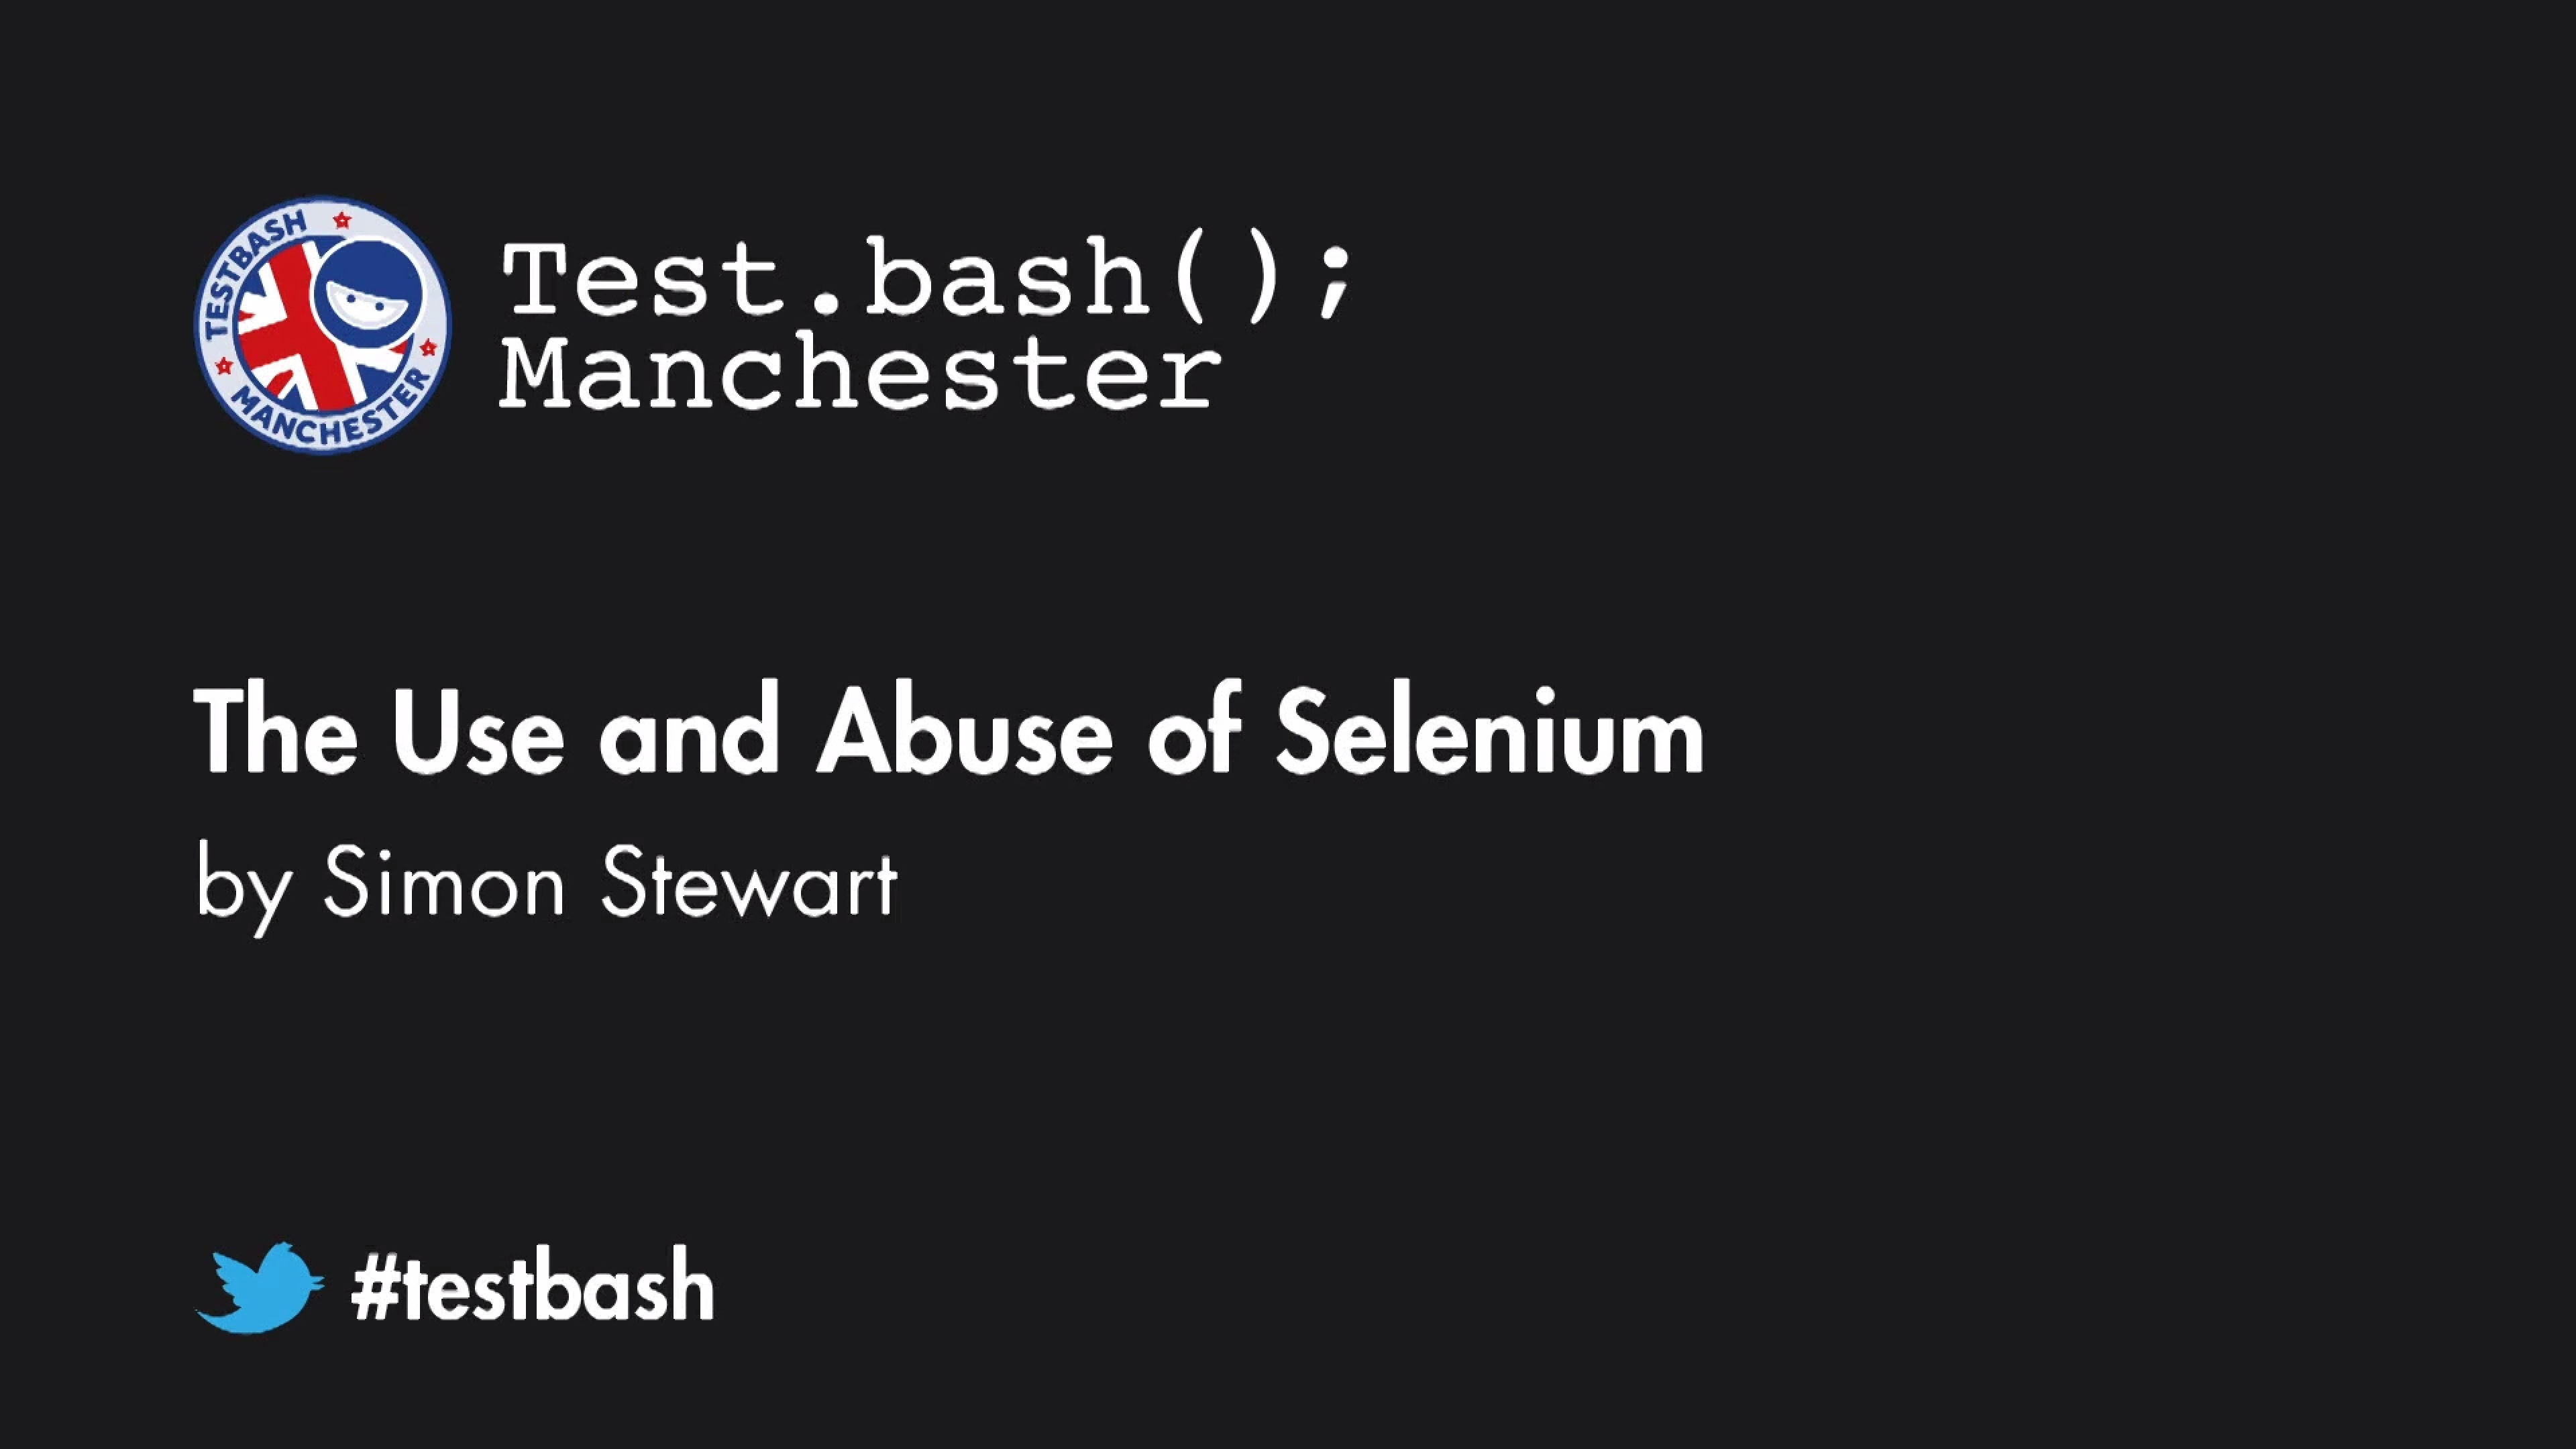 The Use and Abuse of Selenium - Simon Stewart